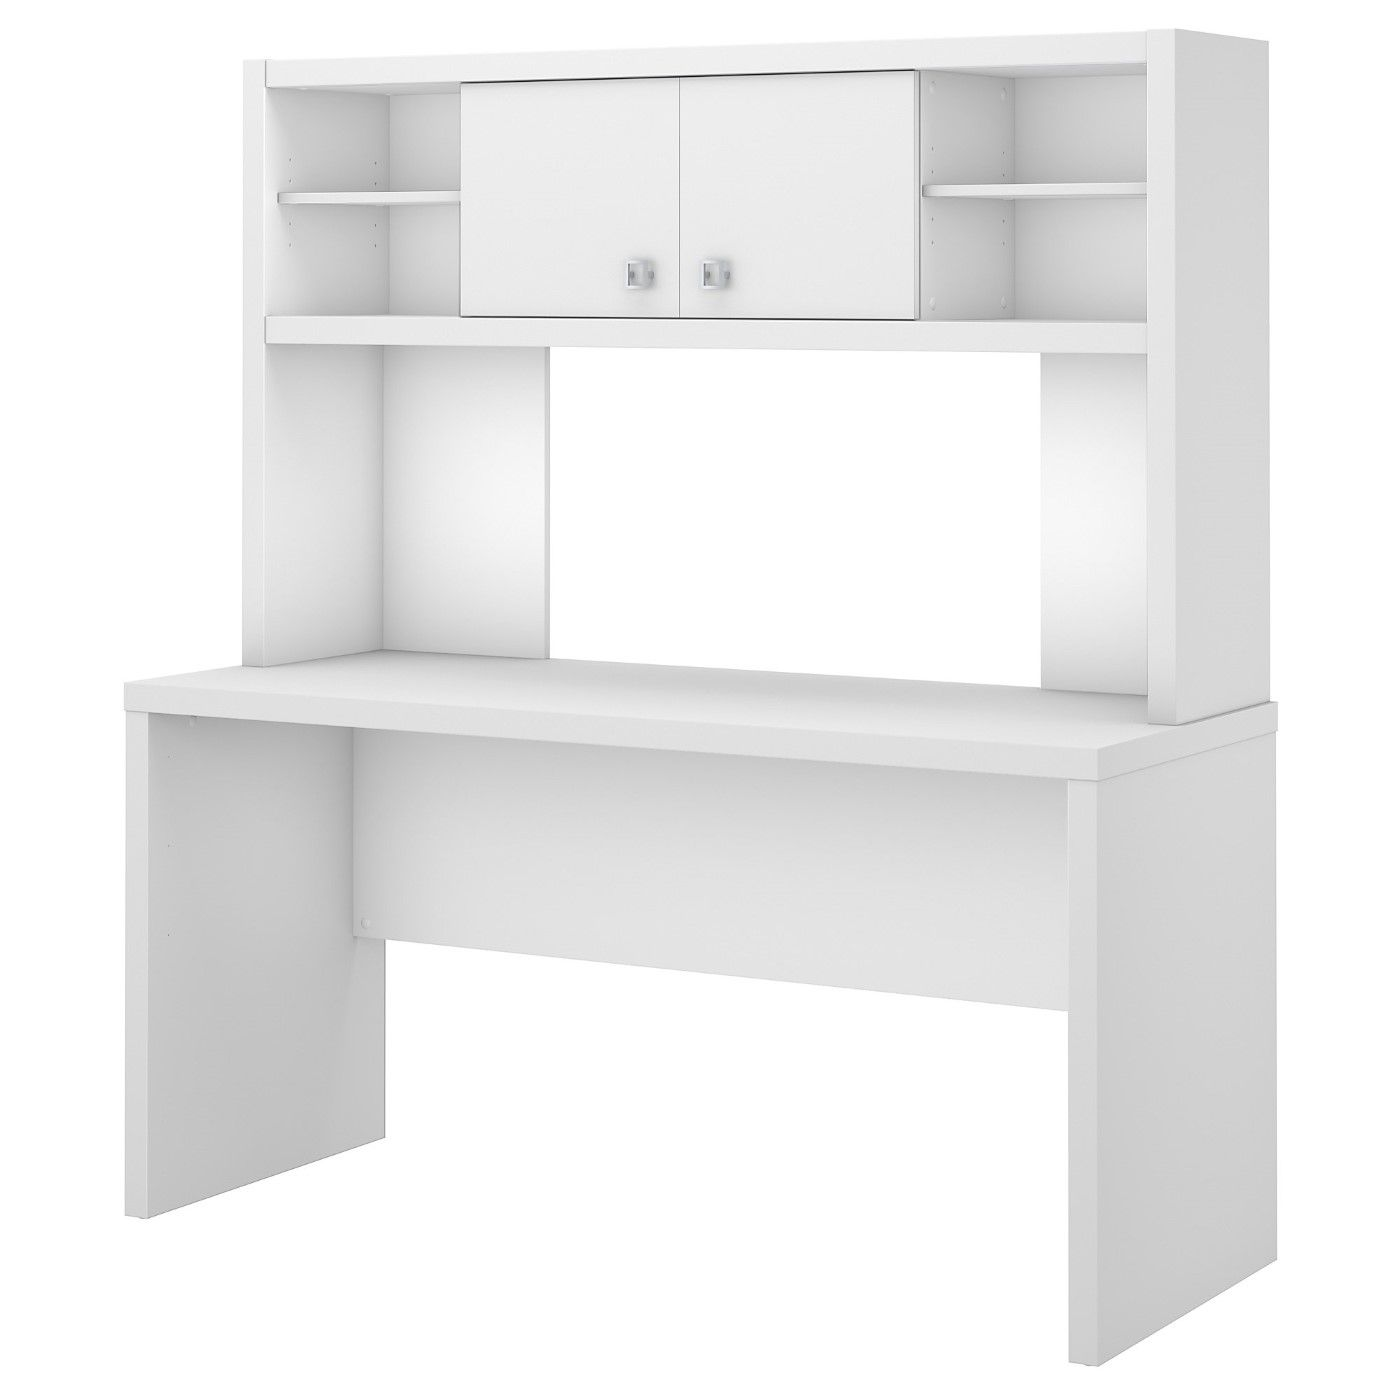 OFFICE BY KATHY IRELAND� ECHO 60W CREDENZA DESK WITH HUTCH. FREE SHIPPING